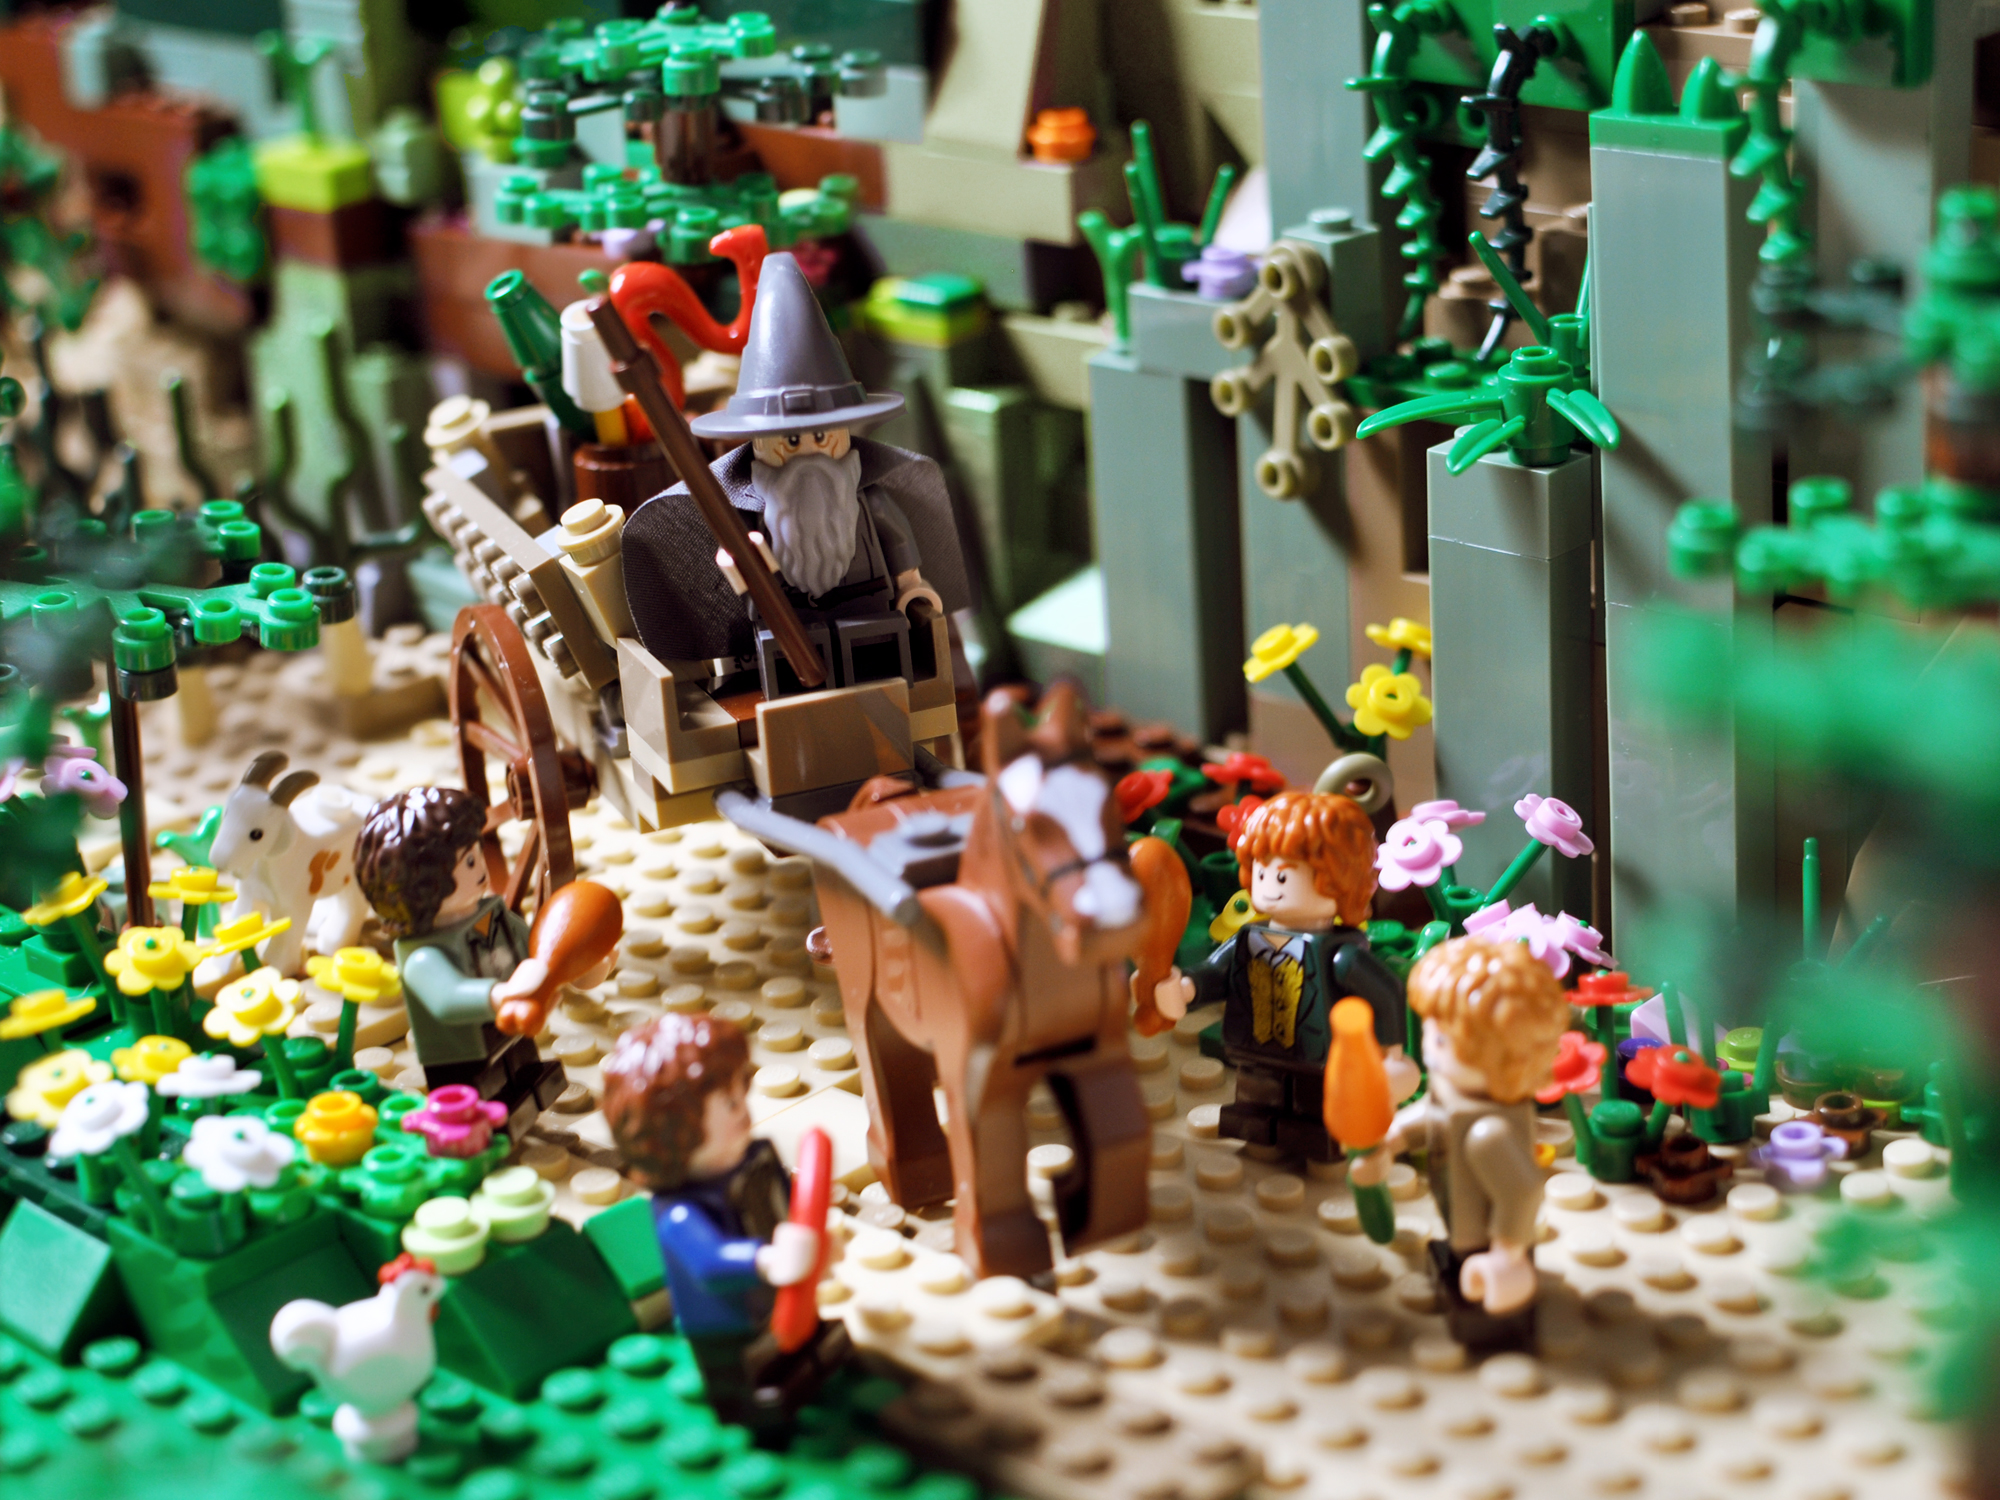 Lord of the Rings in Lego: Part One